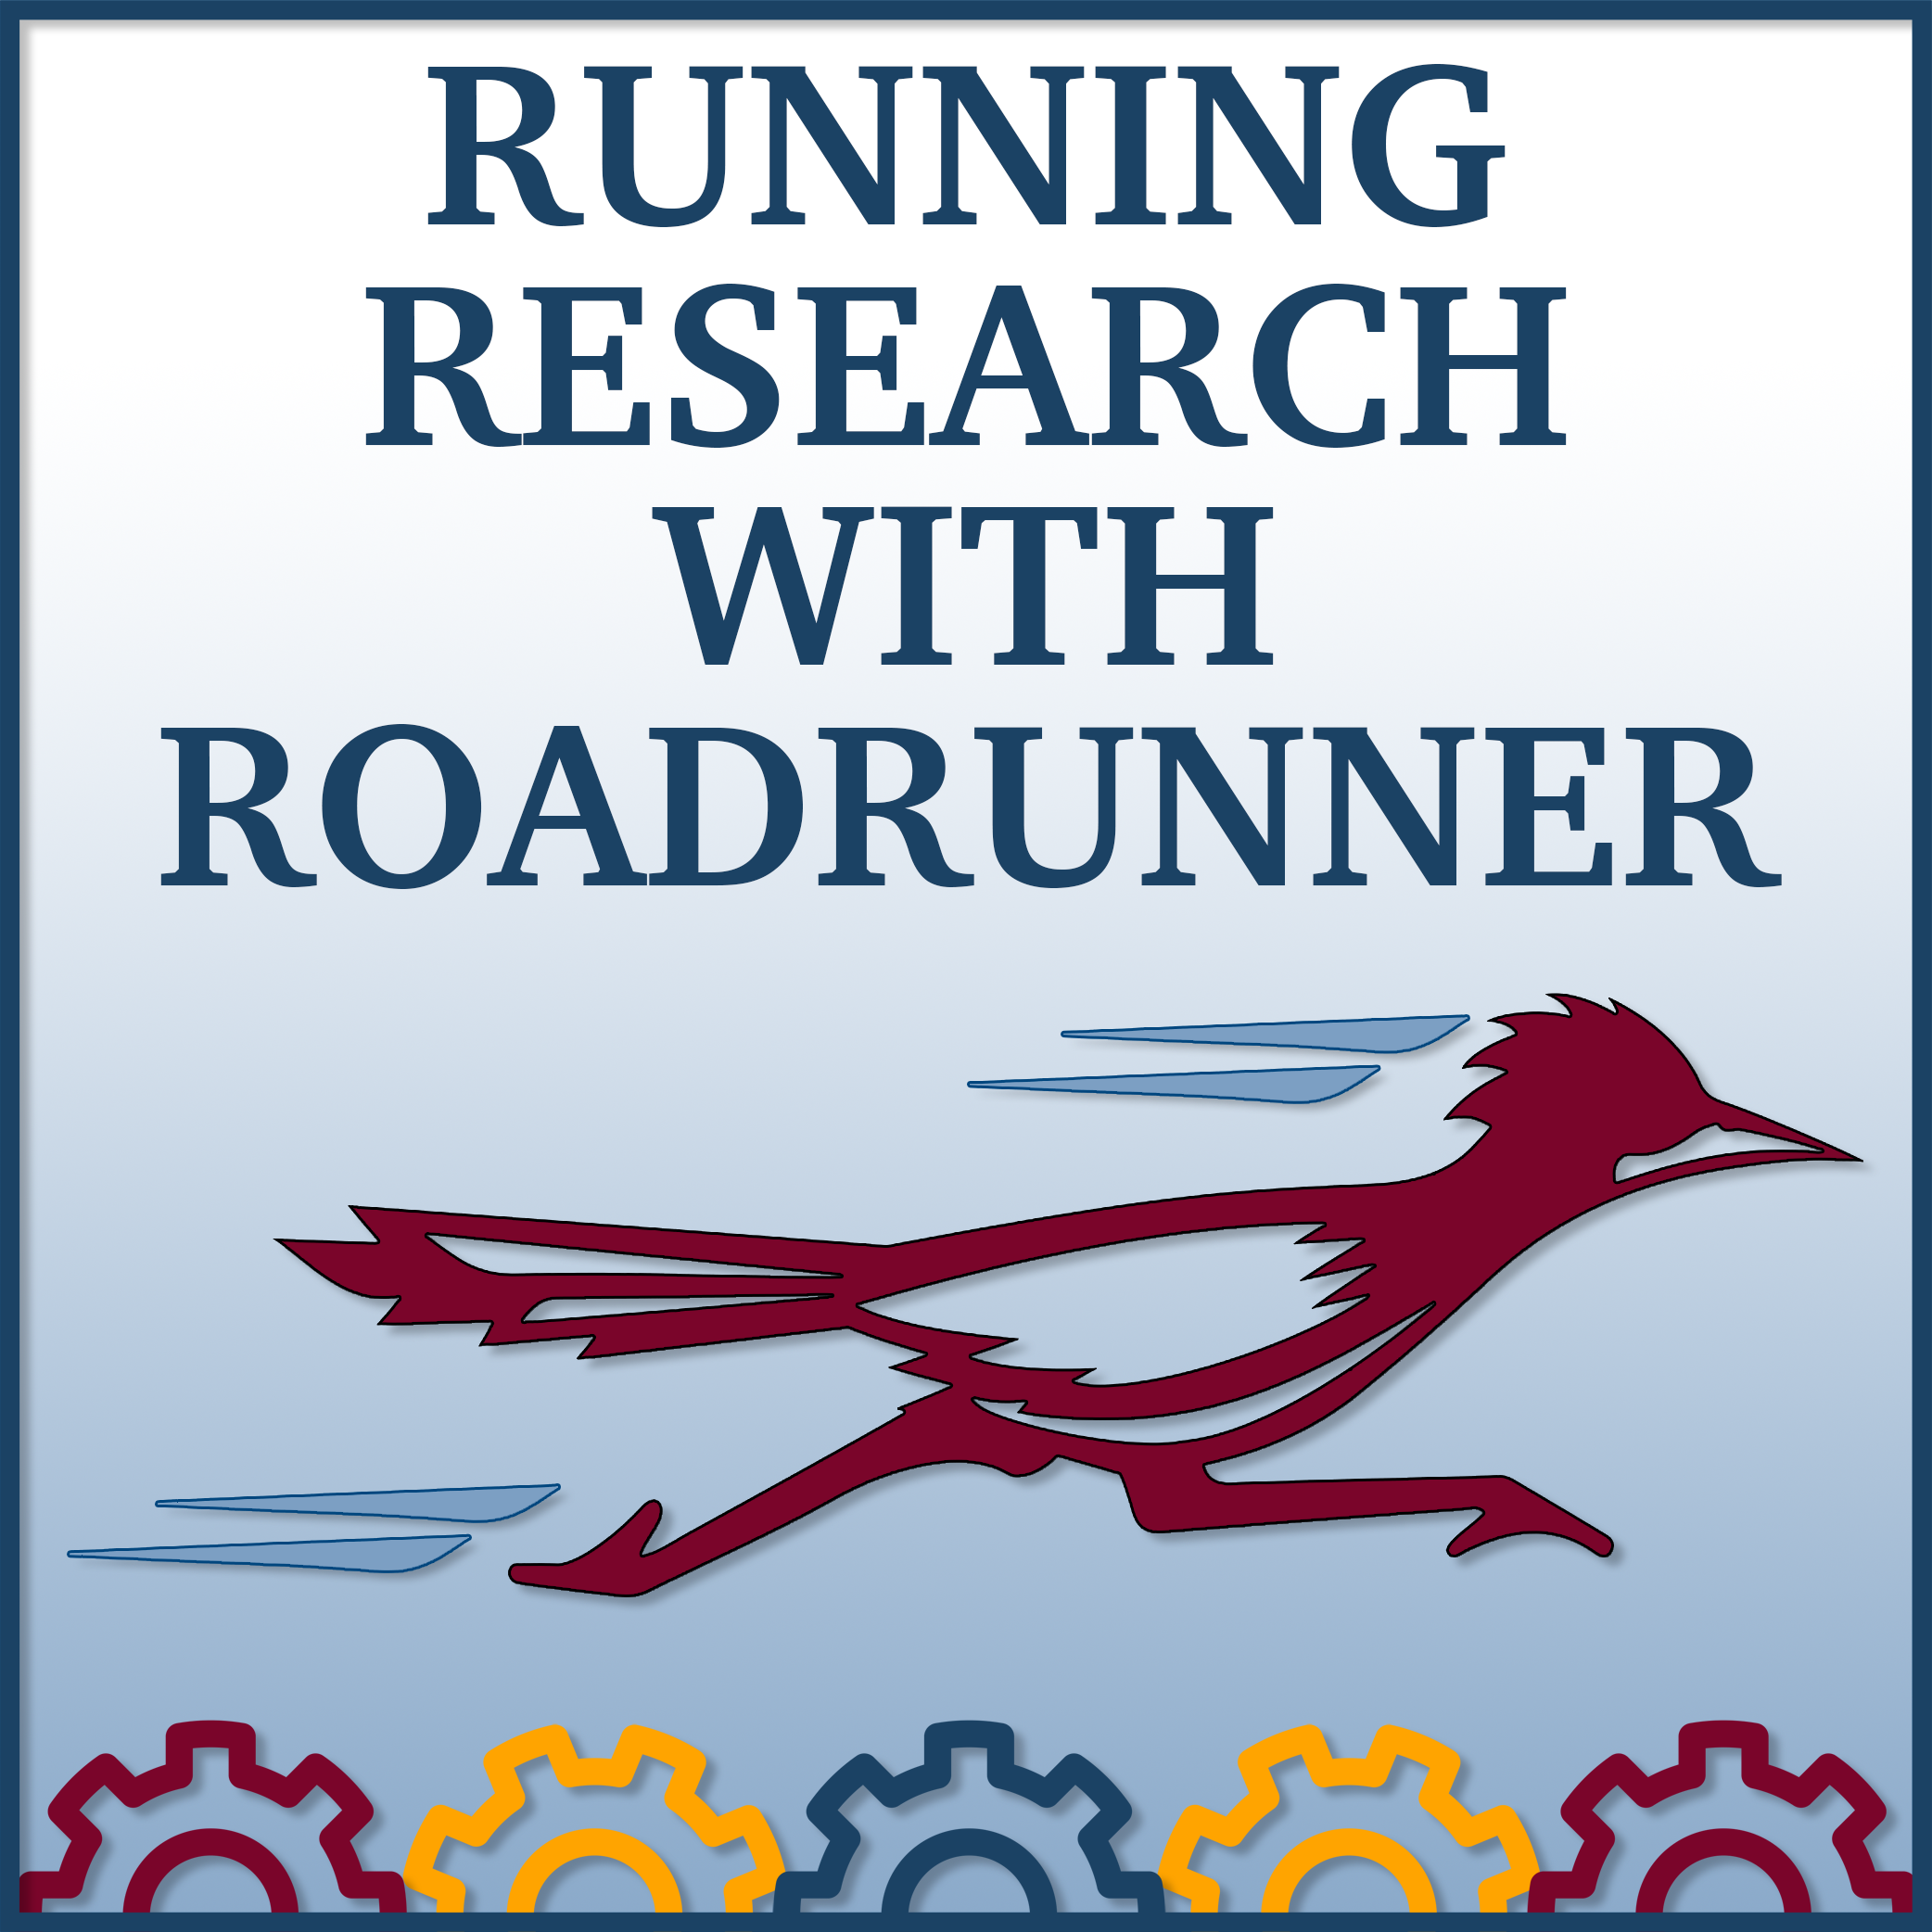 Running Research with Roadrunner